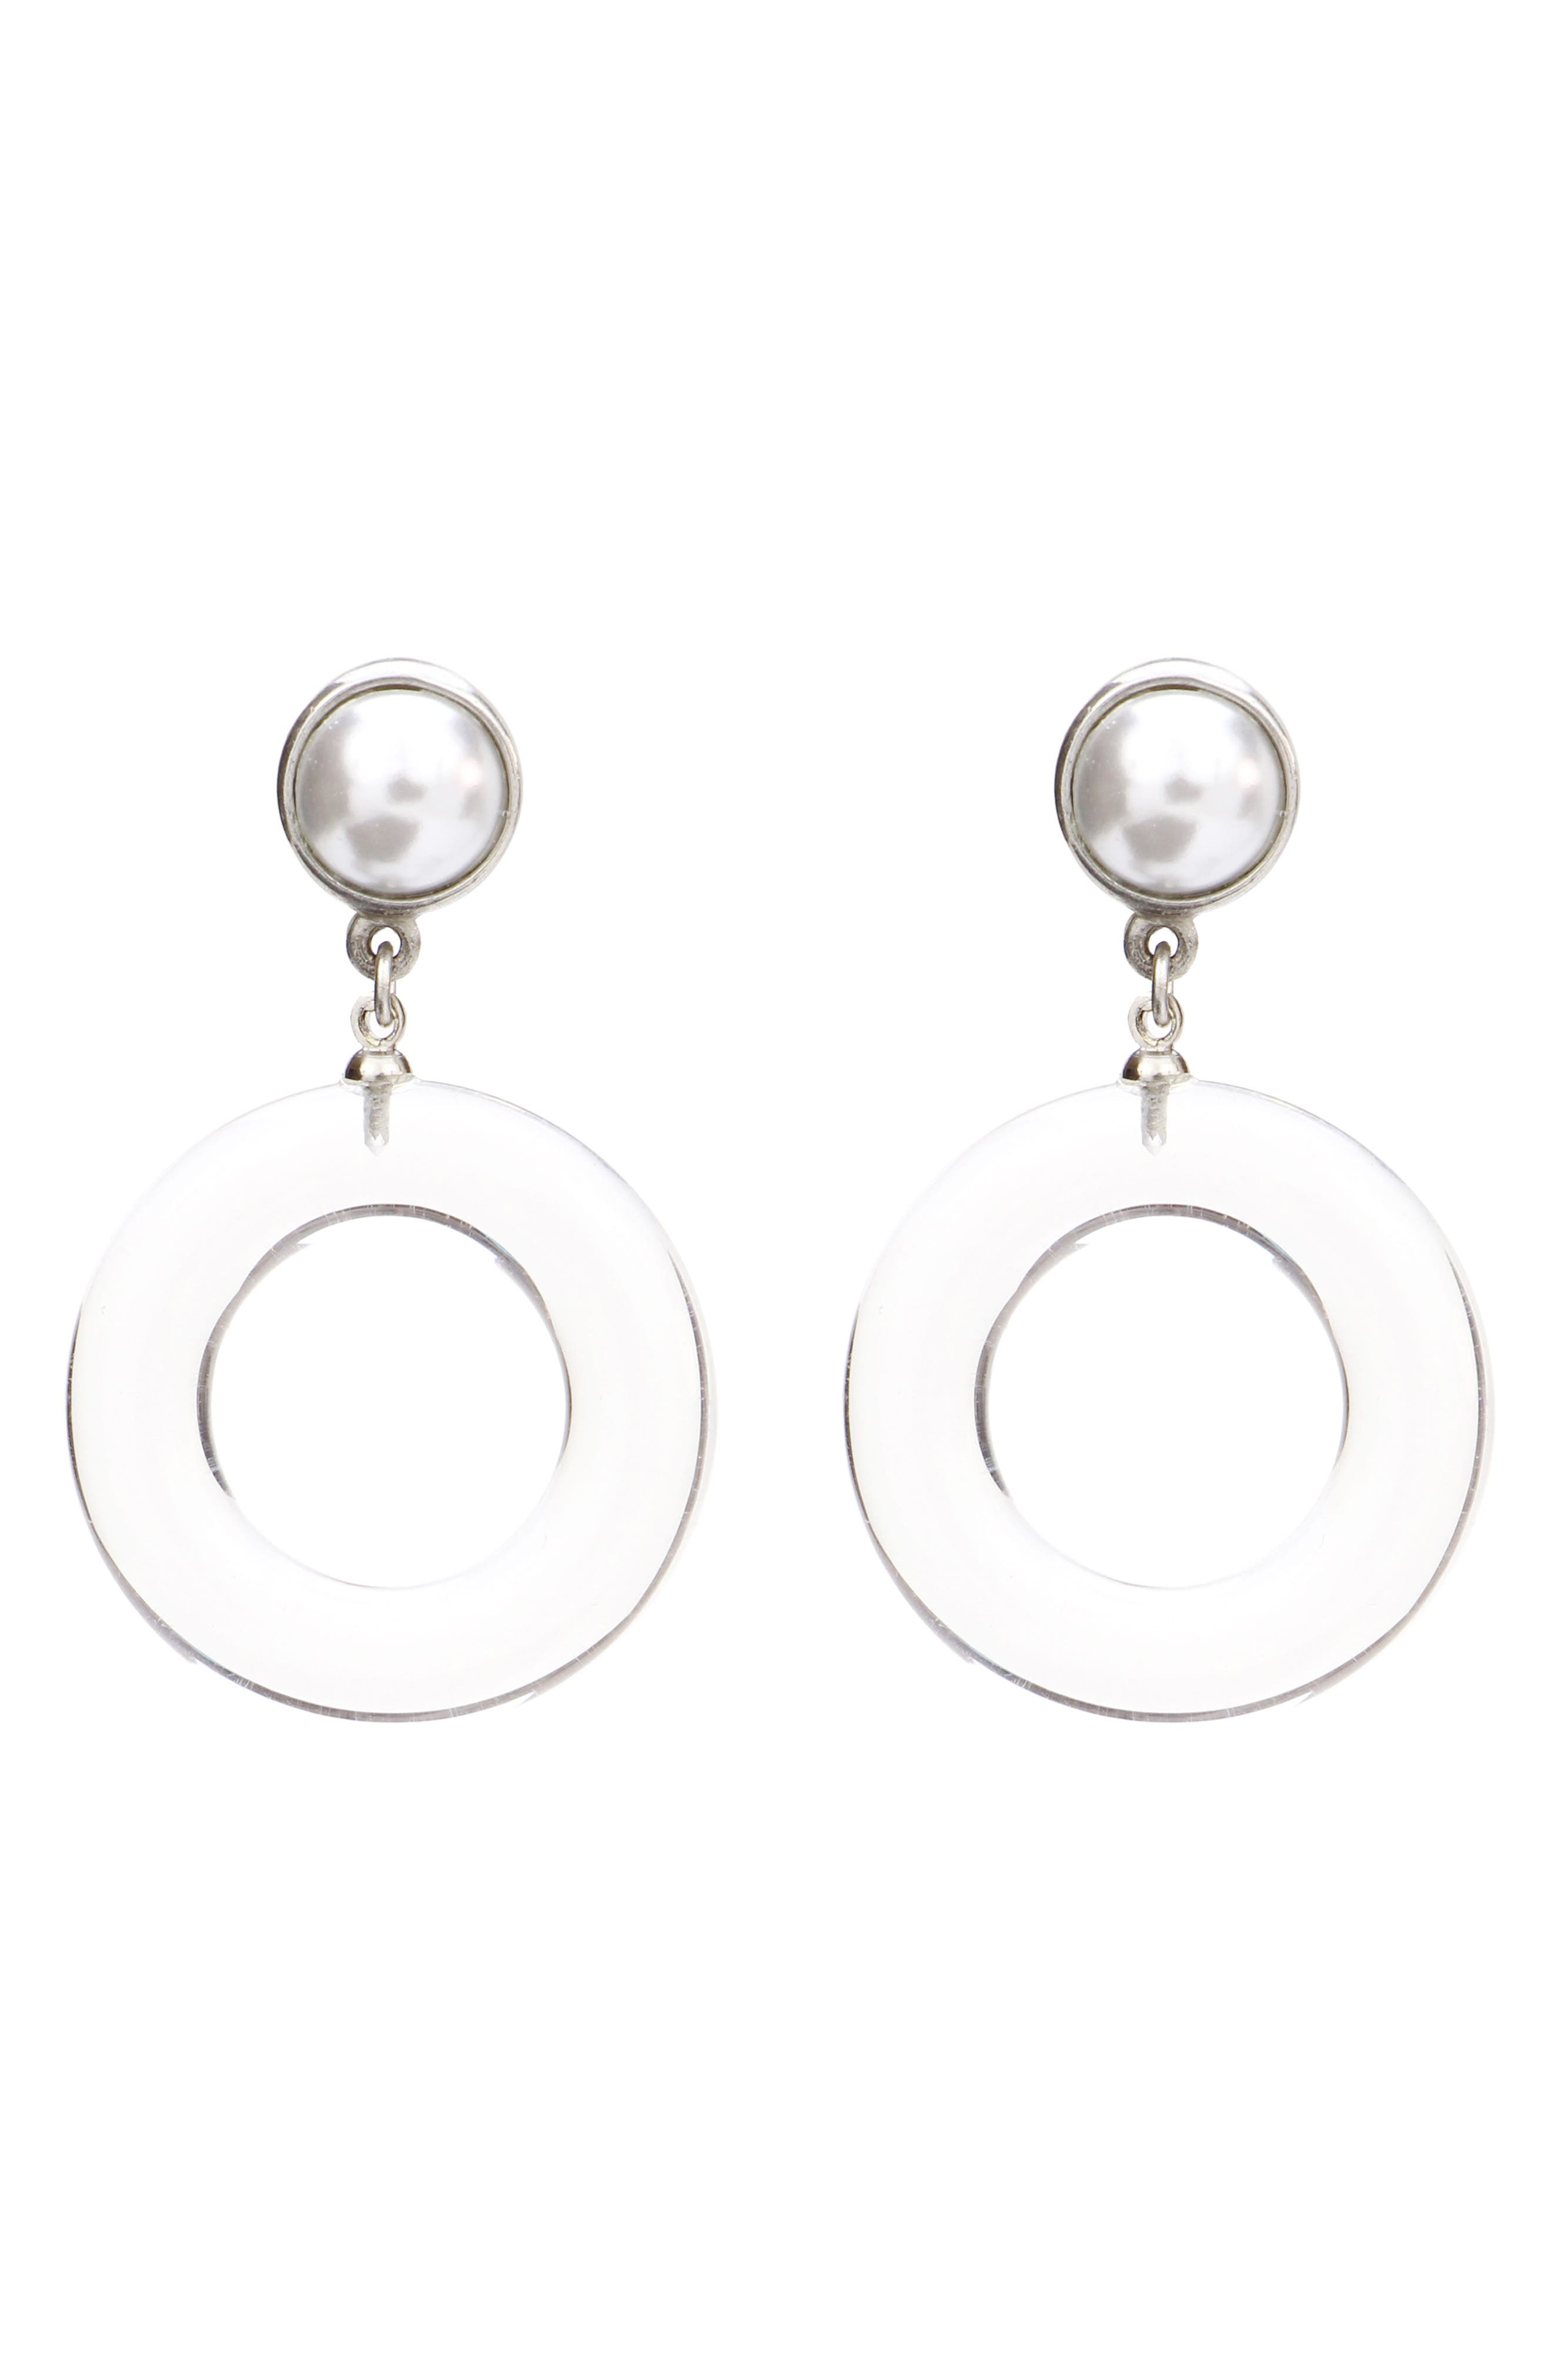 Imitation Pearl Clip Earrings,                         Main,                         color, CLEAR/ SILVER